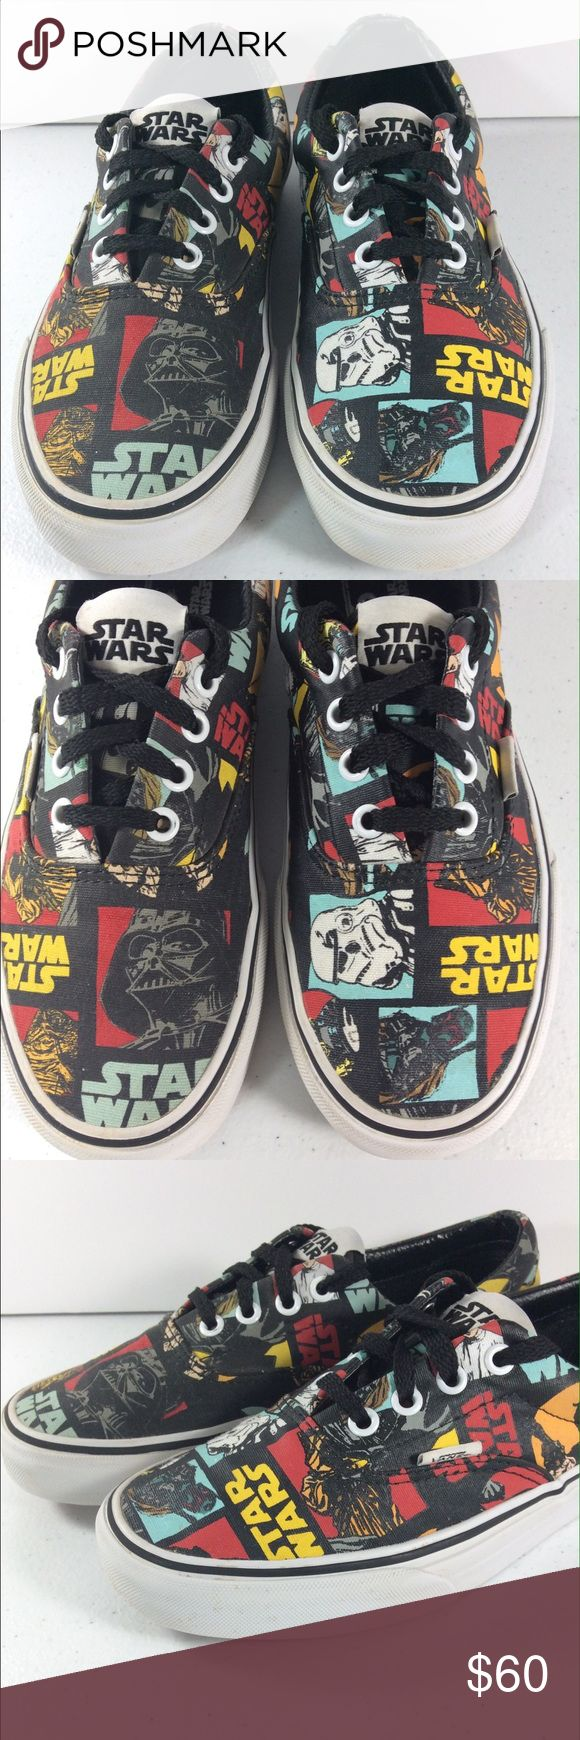 Vans X Star Wars May The Force Lo Size 6 Vans ERA Mens Shoes Star Wars Classic Repeat US Mens Size: 6 Women's: 7.5 Great Condition! Laces have been replaced.  The Vans x Star Wars Era shoes are full of colorful Star Wars characters in a bright repeating patter on a comfortable vulcanized construction. Vans x Star Wars Era Classic shoe. Exclusive Vans and Star Wars collaboration. Brightly colored Star Wars characters repeated throughout.  Vulcanized construction. Cushioned footbed for…